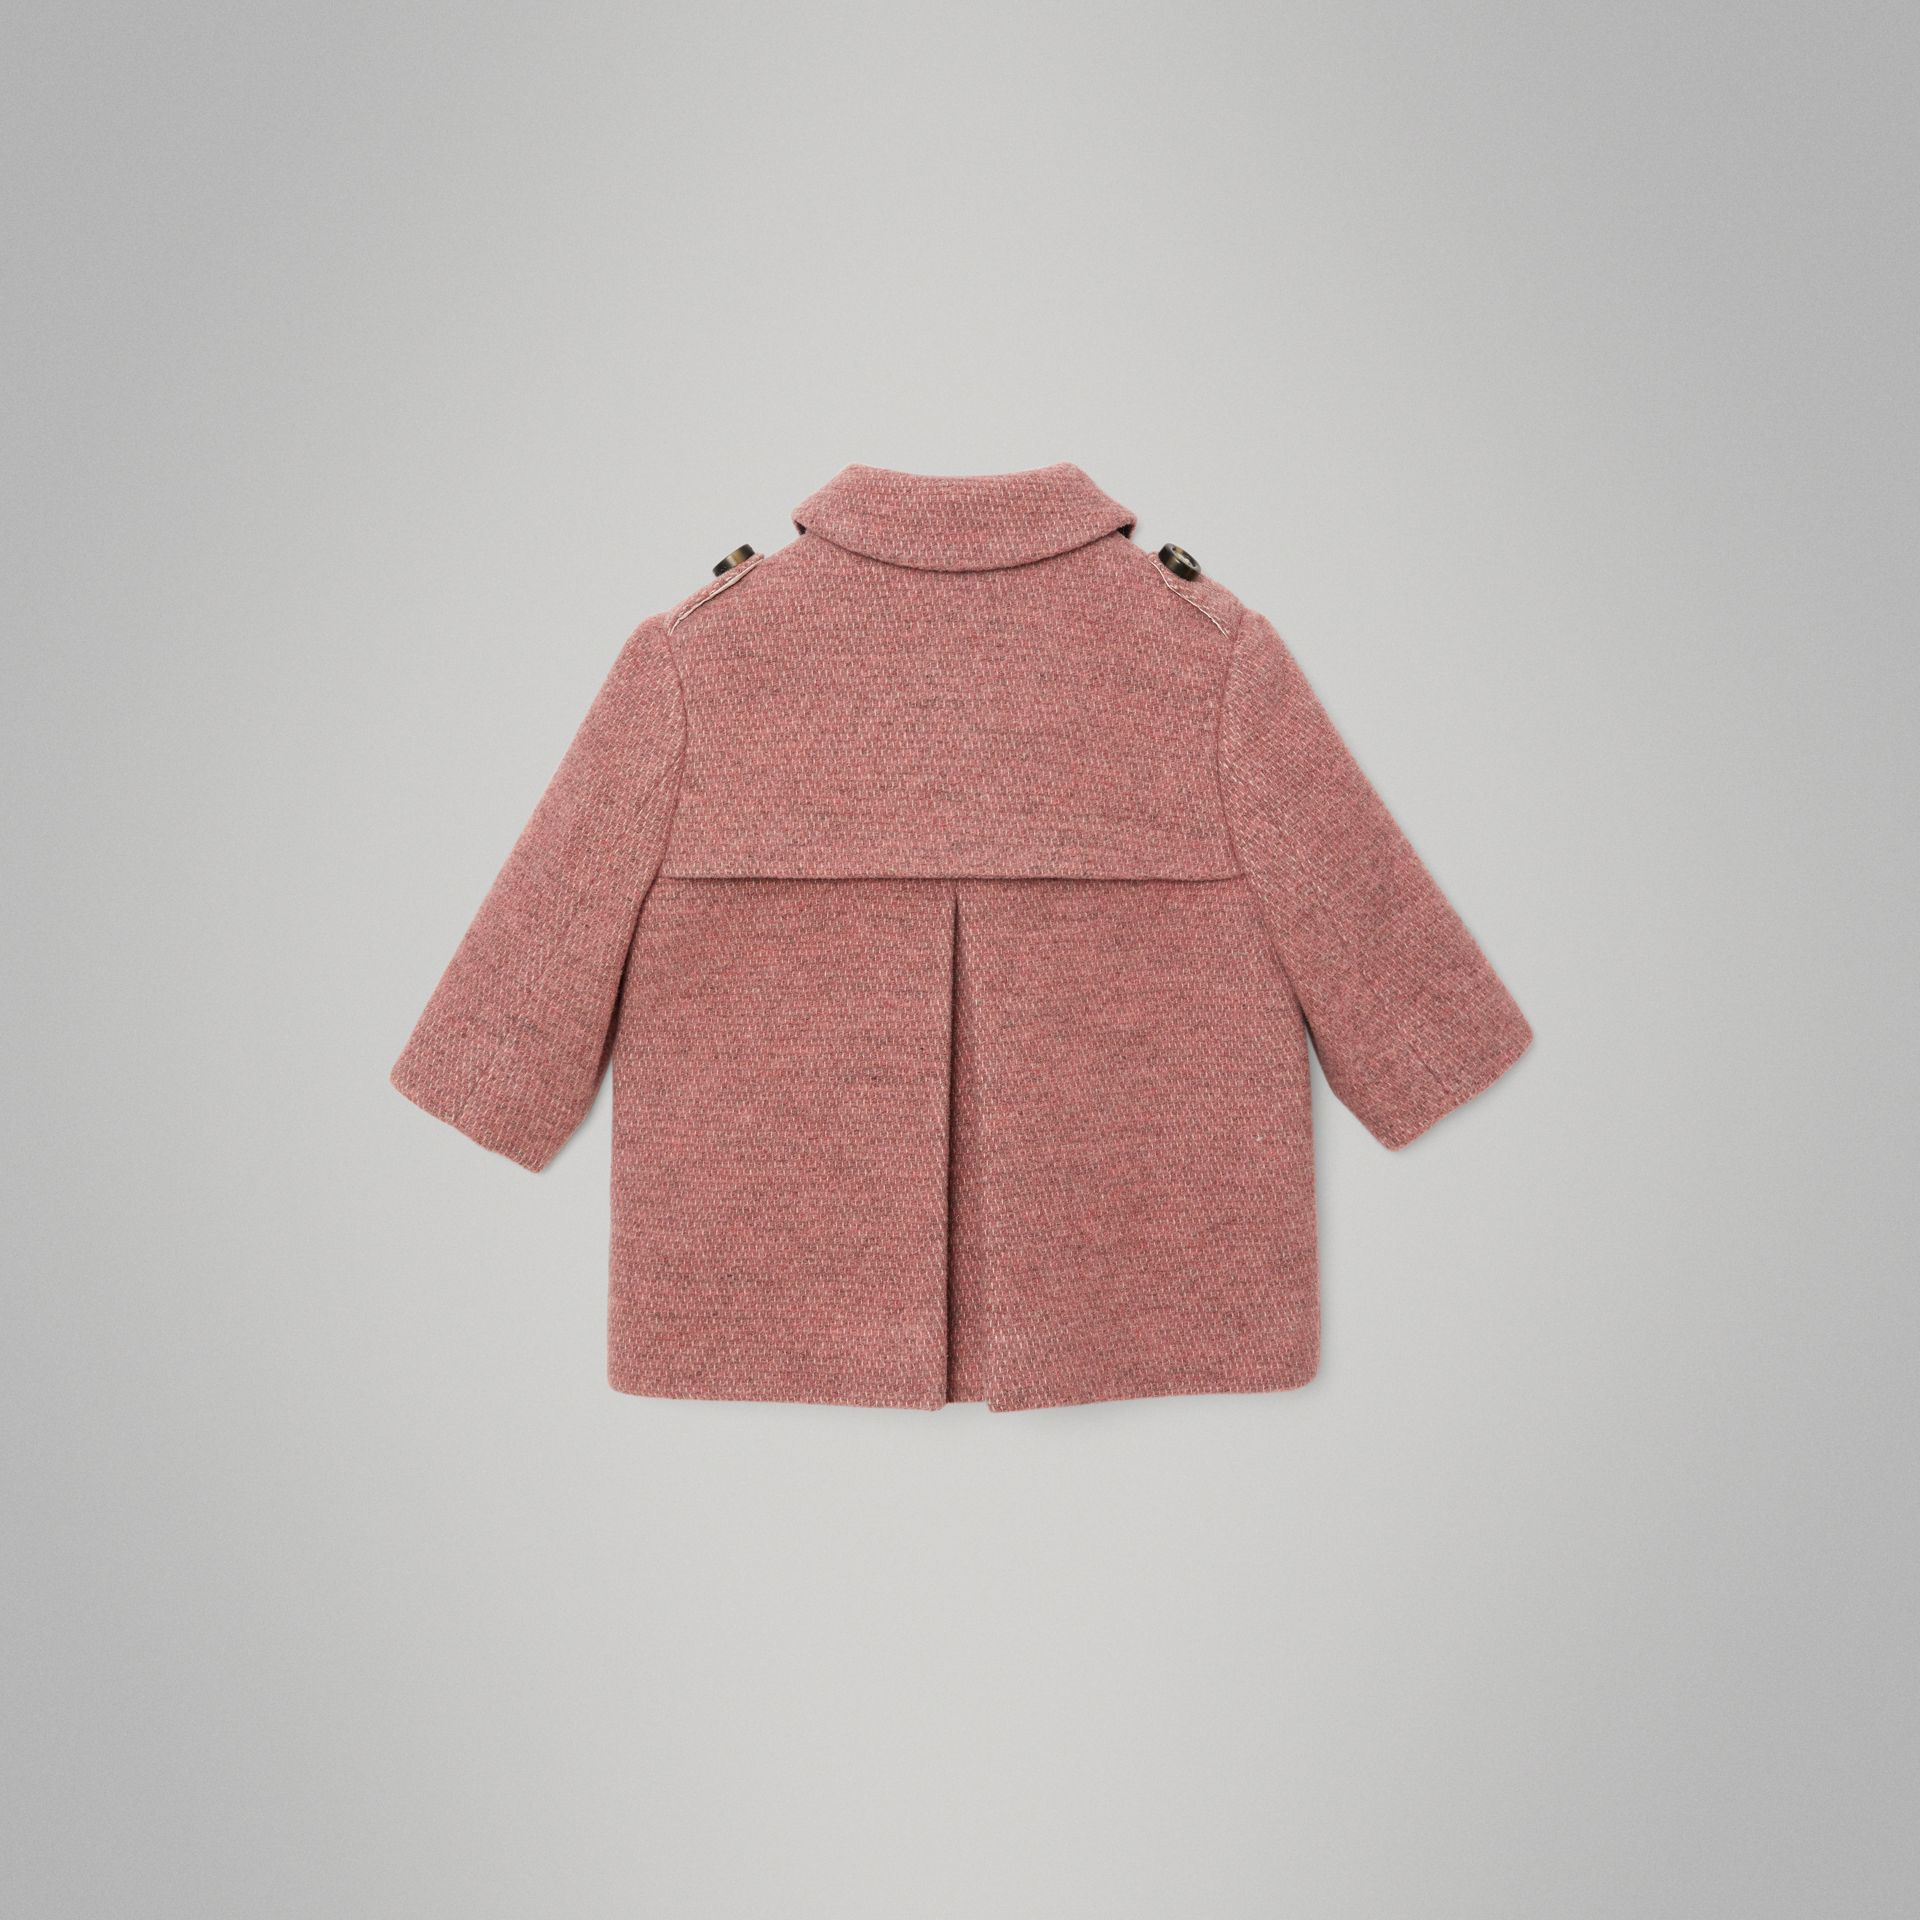 Wool Blend Pea Coat in Rose Pink Melange - Children | Burberry - gallery image 3